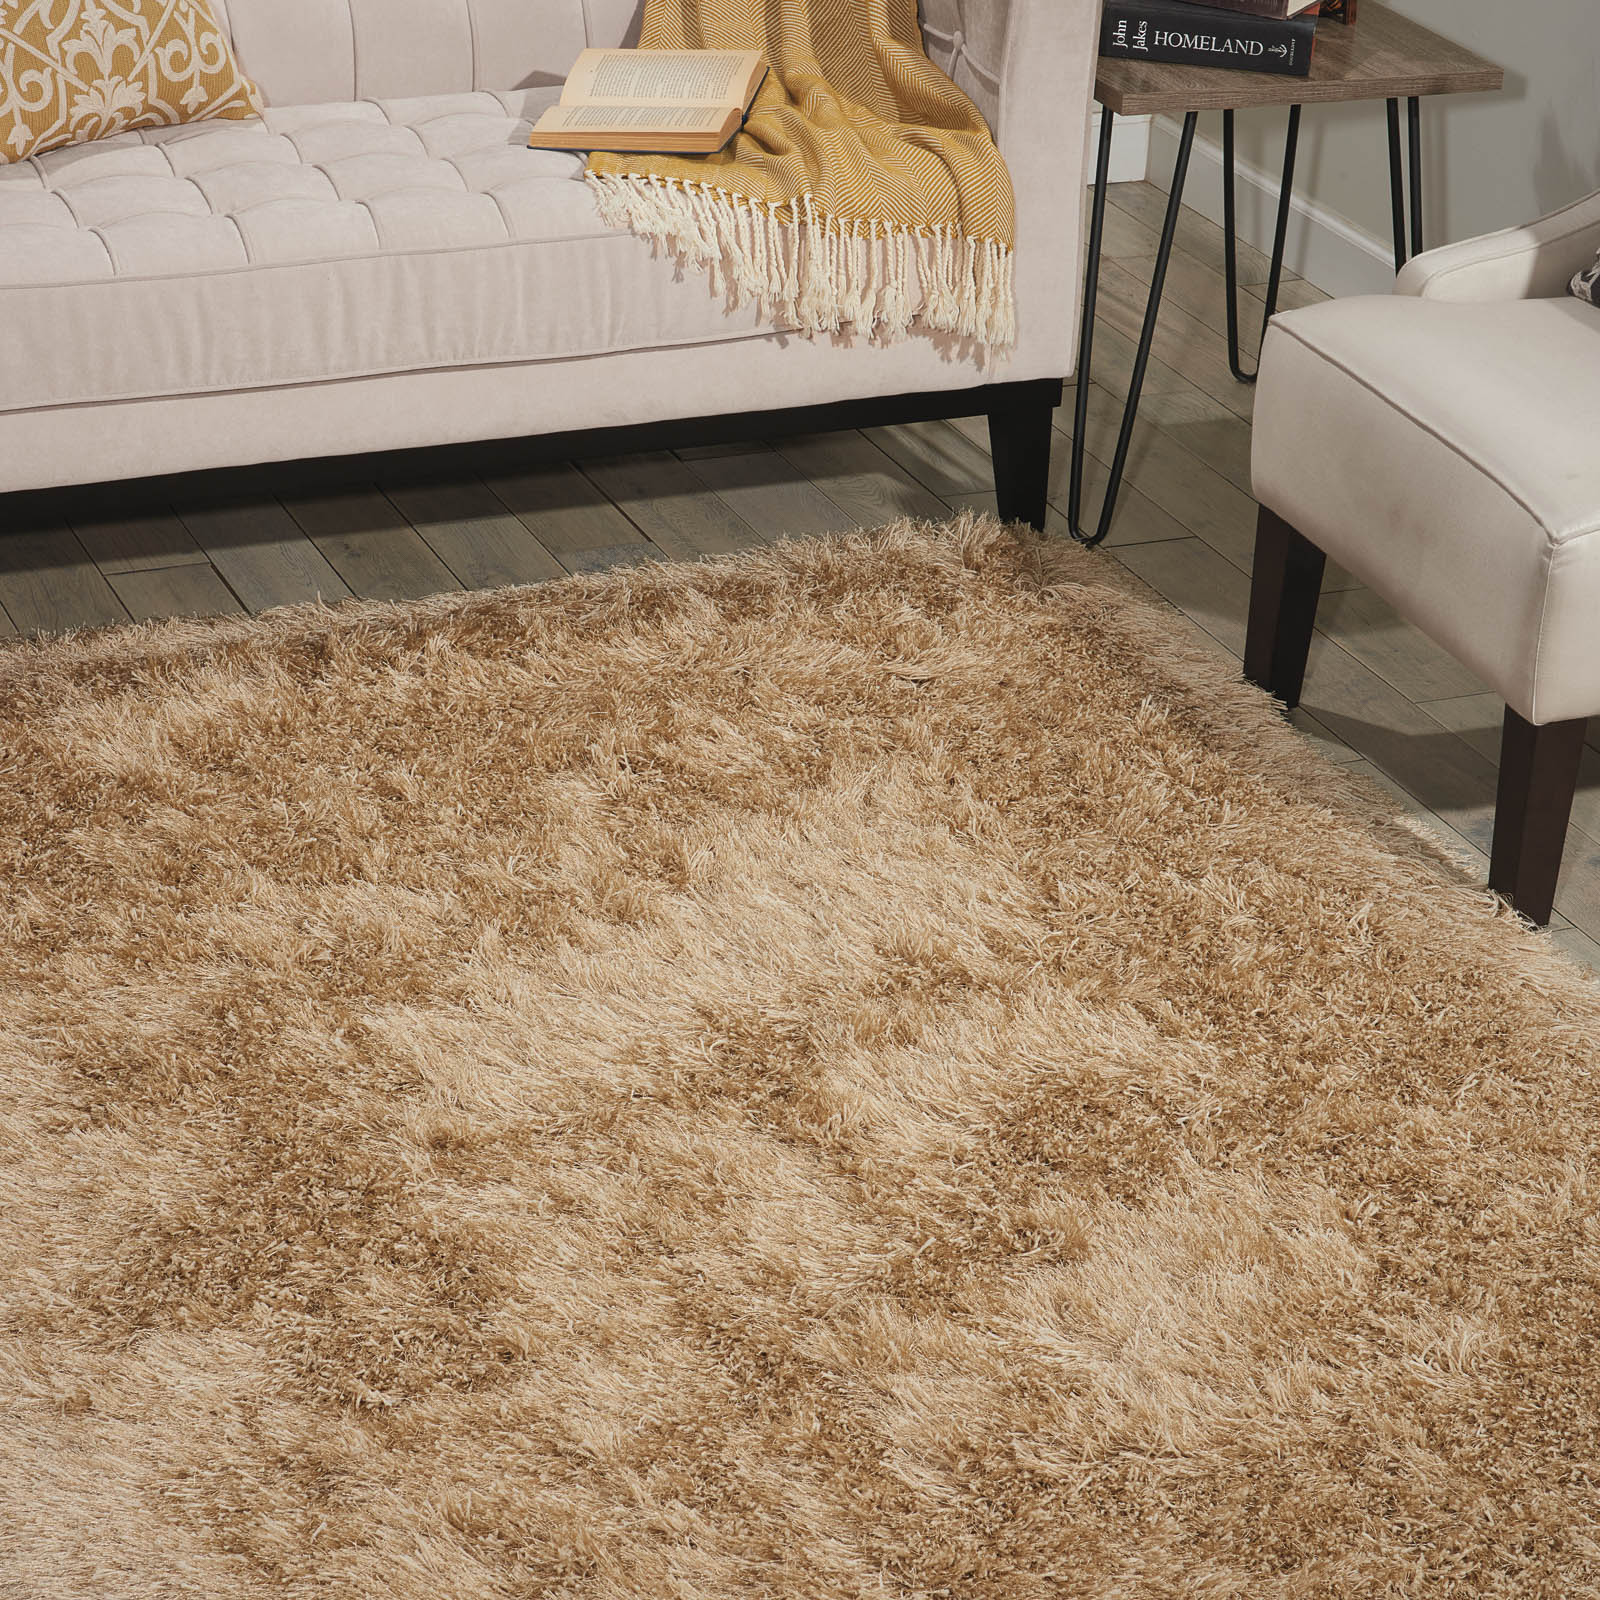 Studio Rugs KI900 in Quartz